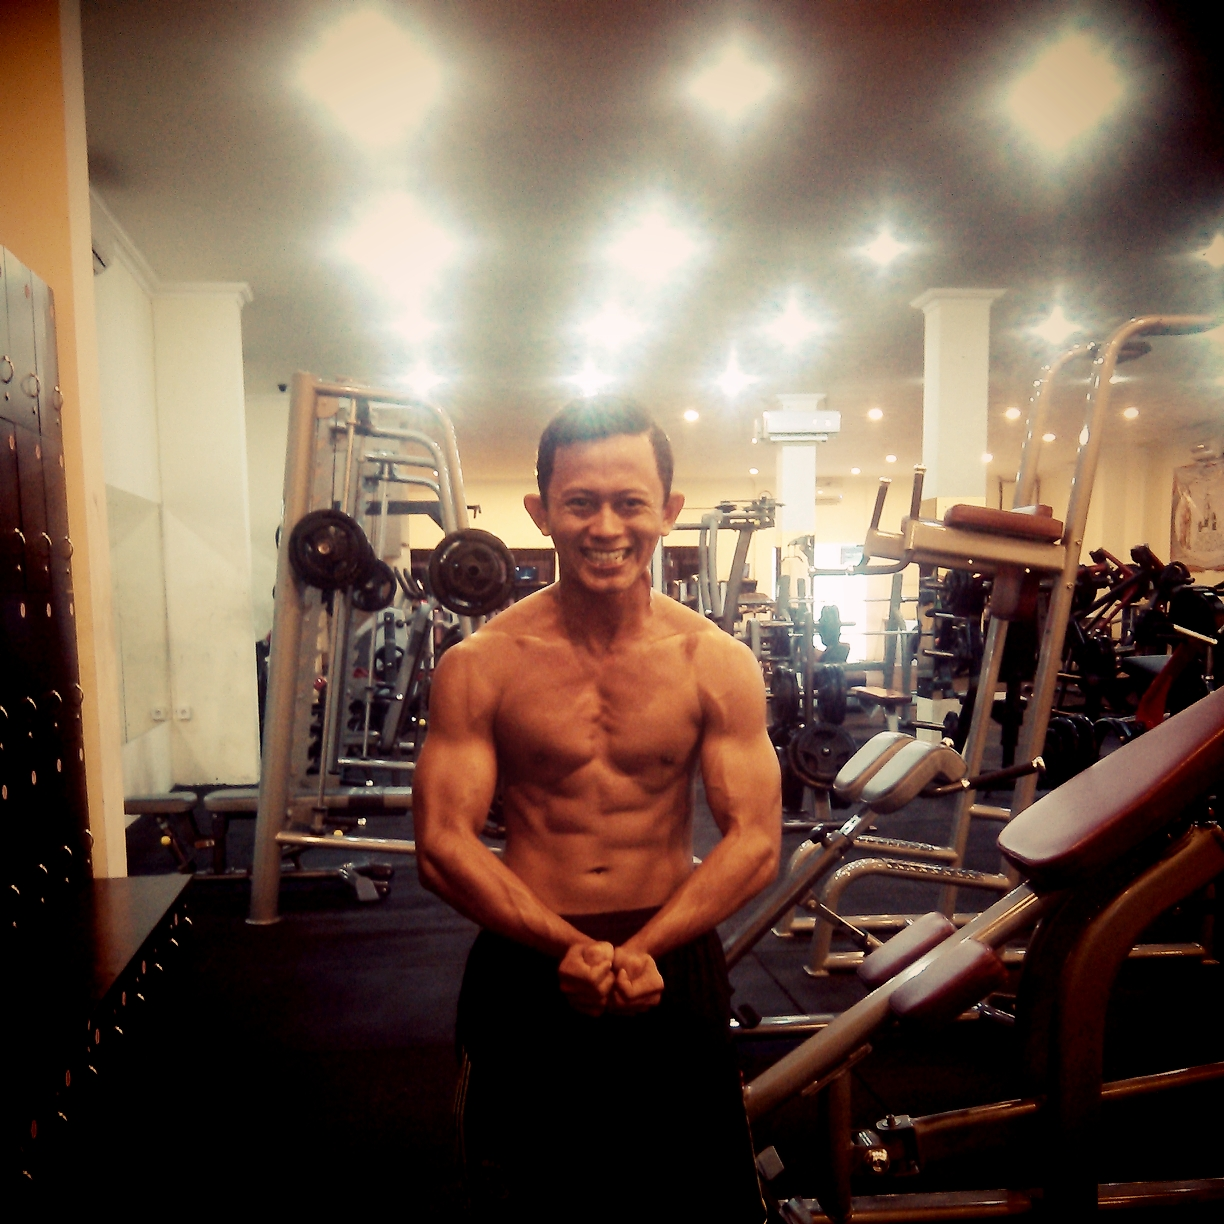 Fitness & Healthy Lifestyle